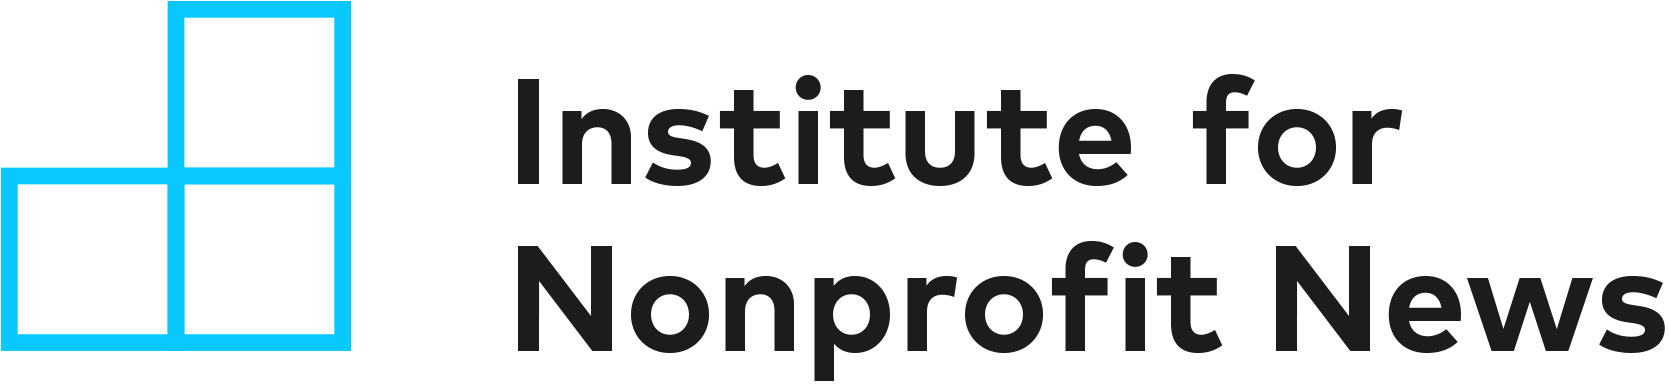 Institute for Nonprofit News Logo